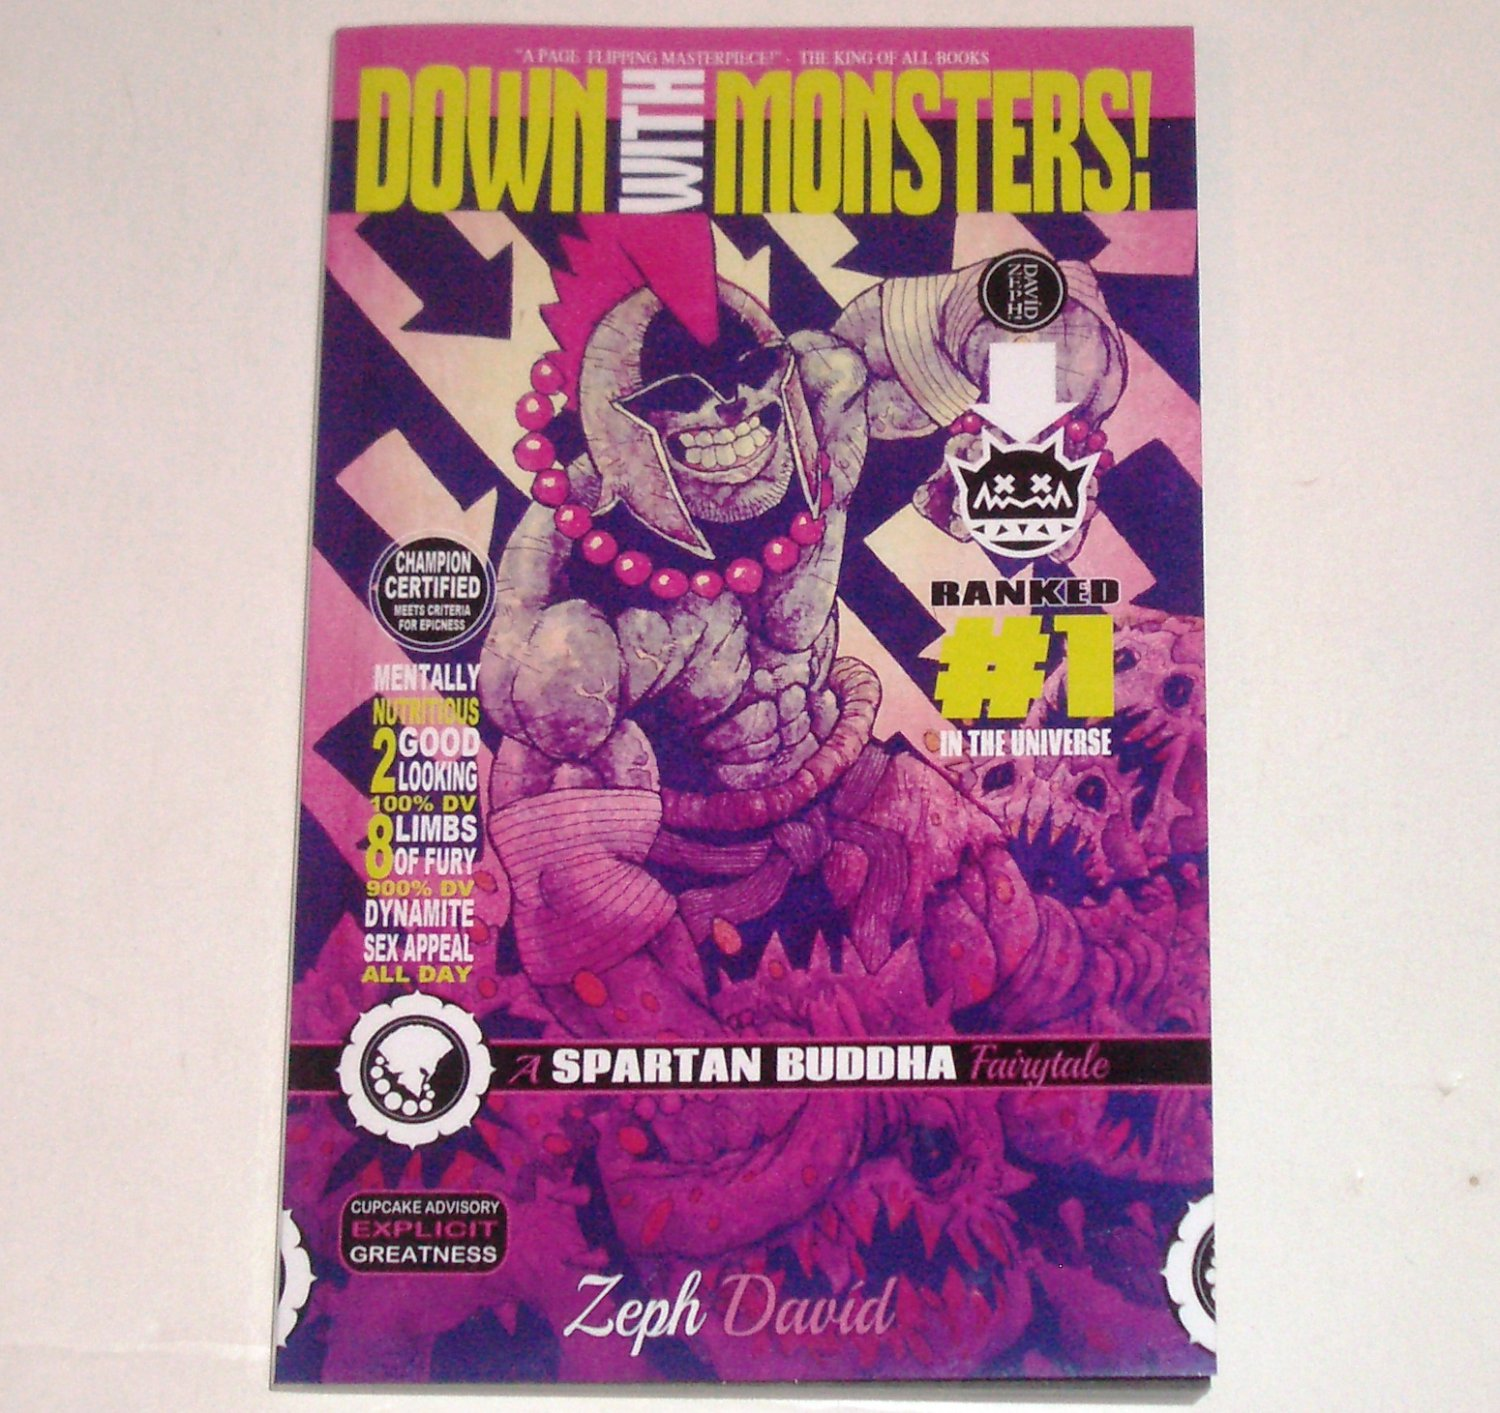 Down With Monsters: A Spartan Buddha Fairytale 2013 Graphic Novel Trade Size